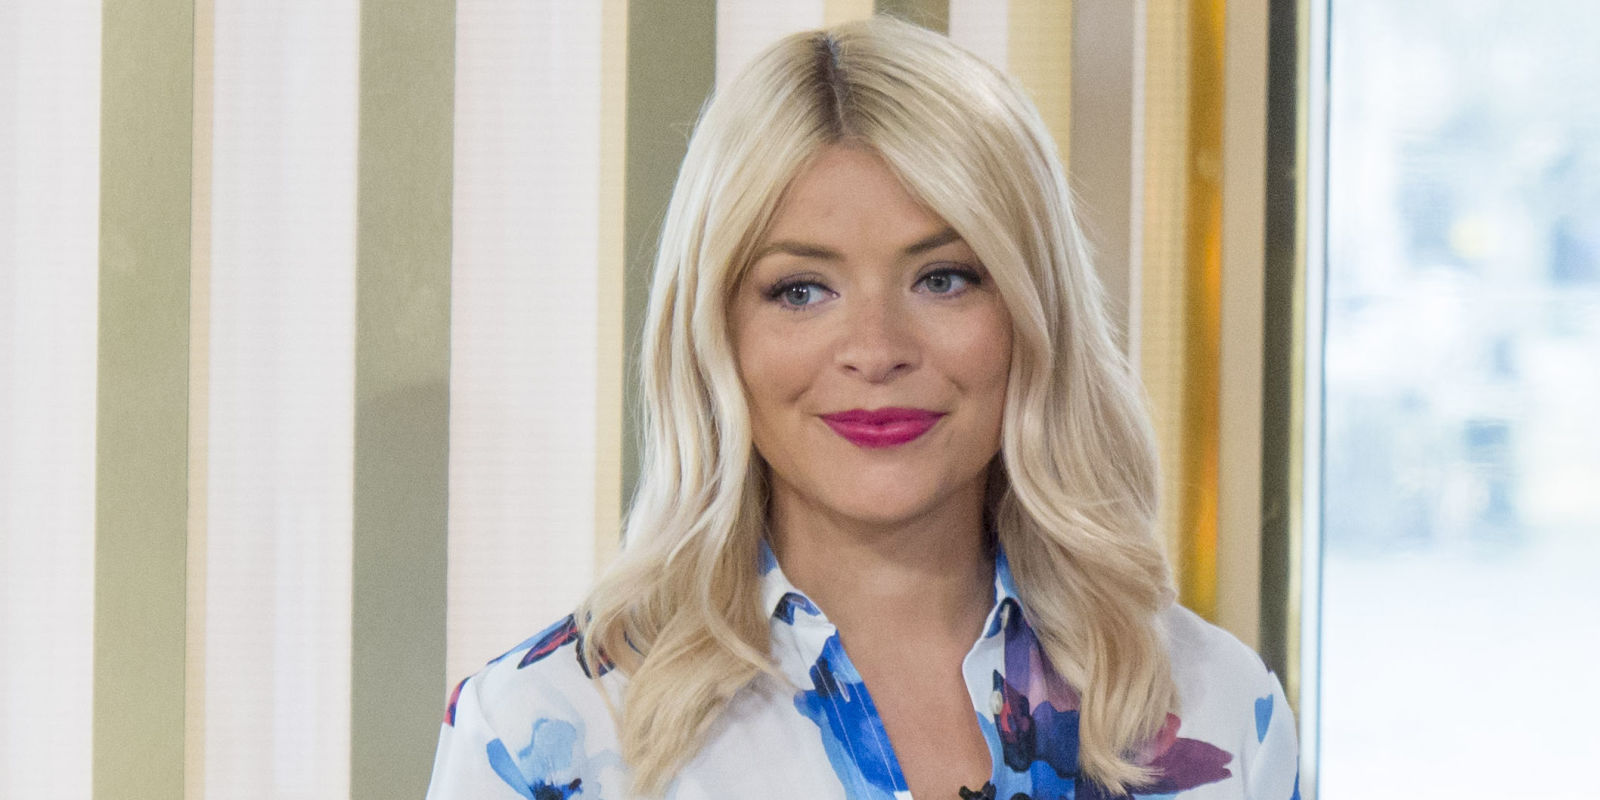 Where's Holly Willoughby today? Bio: Husband, Weight ...